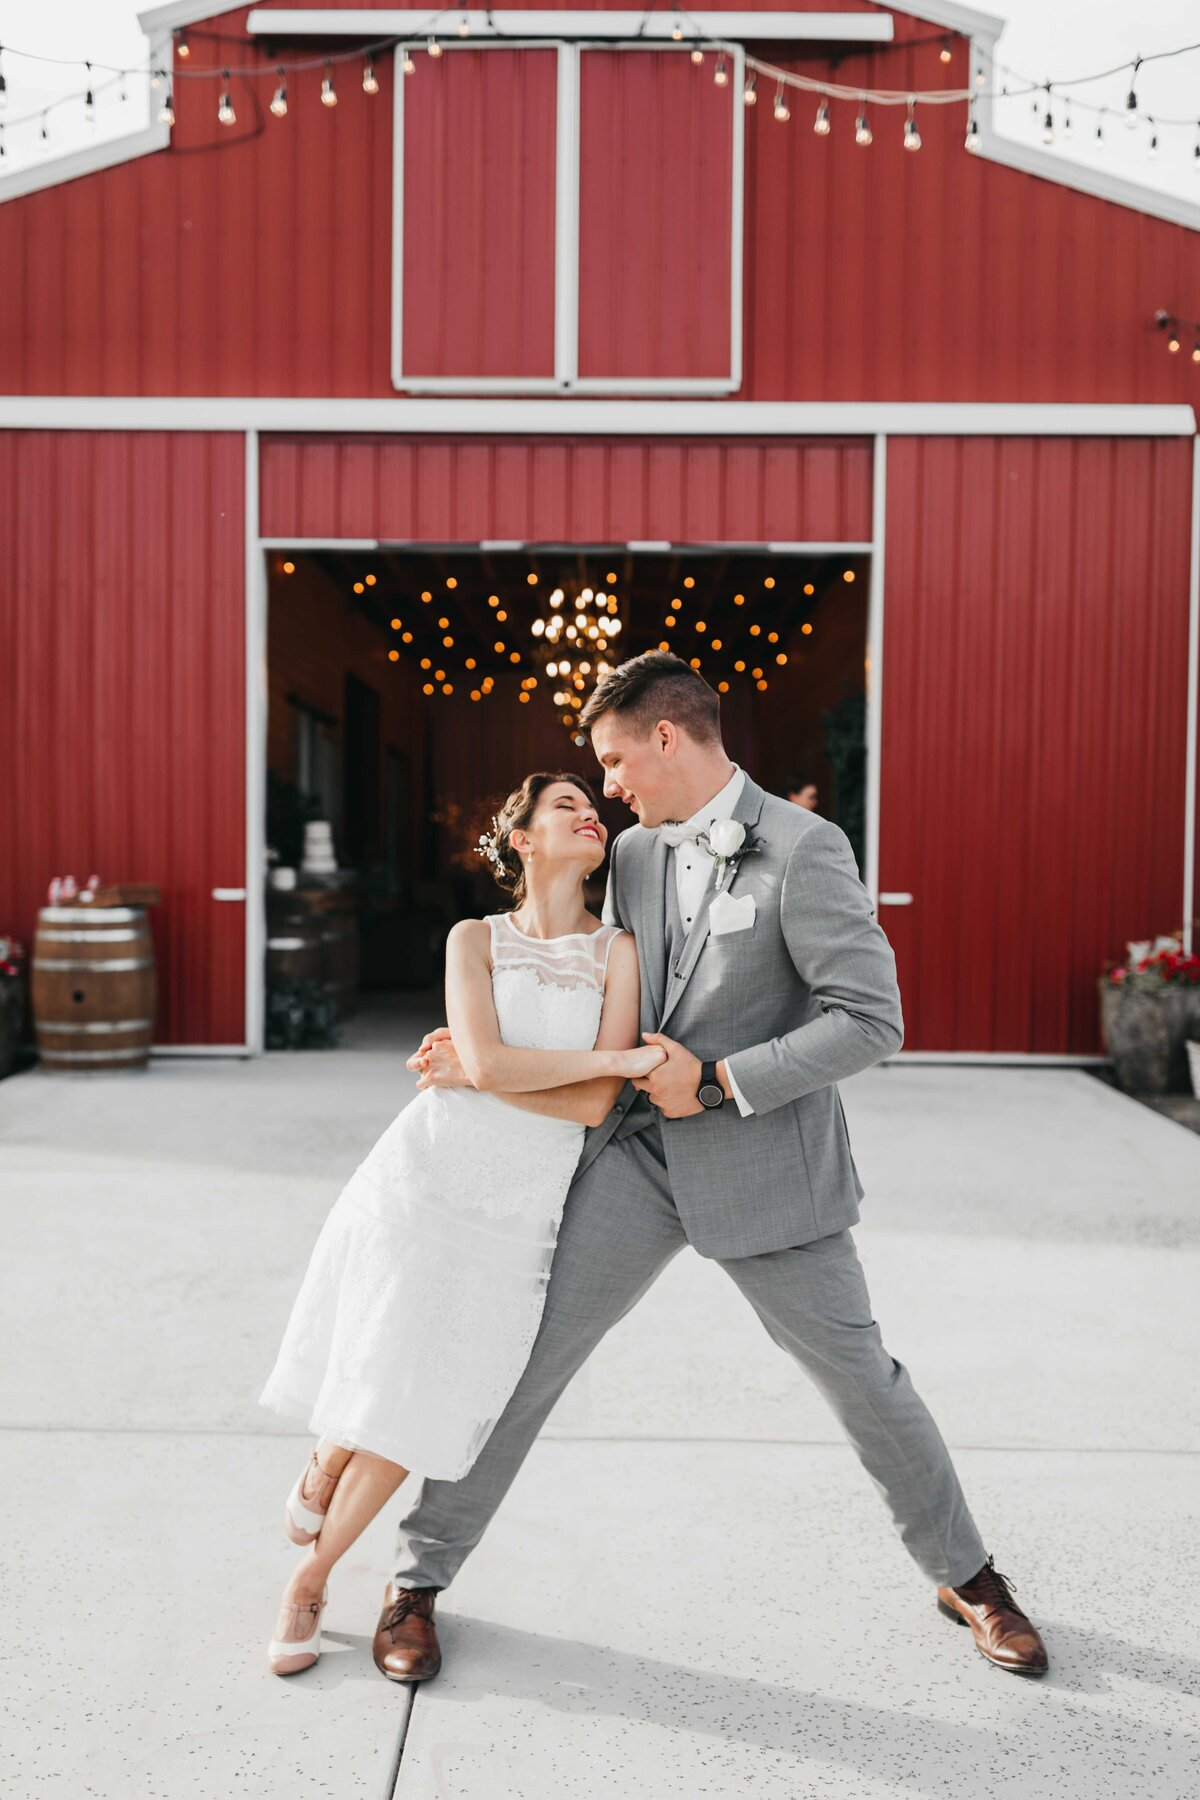 Luxury Wedding Photographer in Spokane Washington, Swing Dance Wedding - Clara Jay Photo